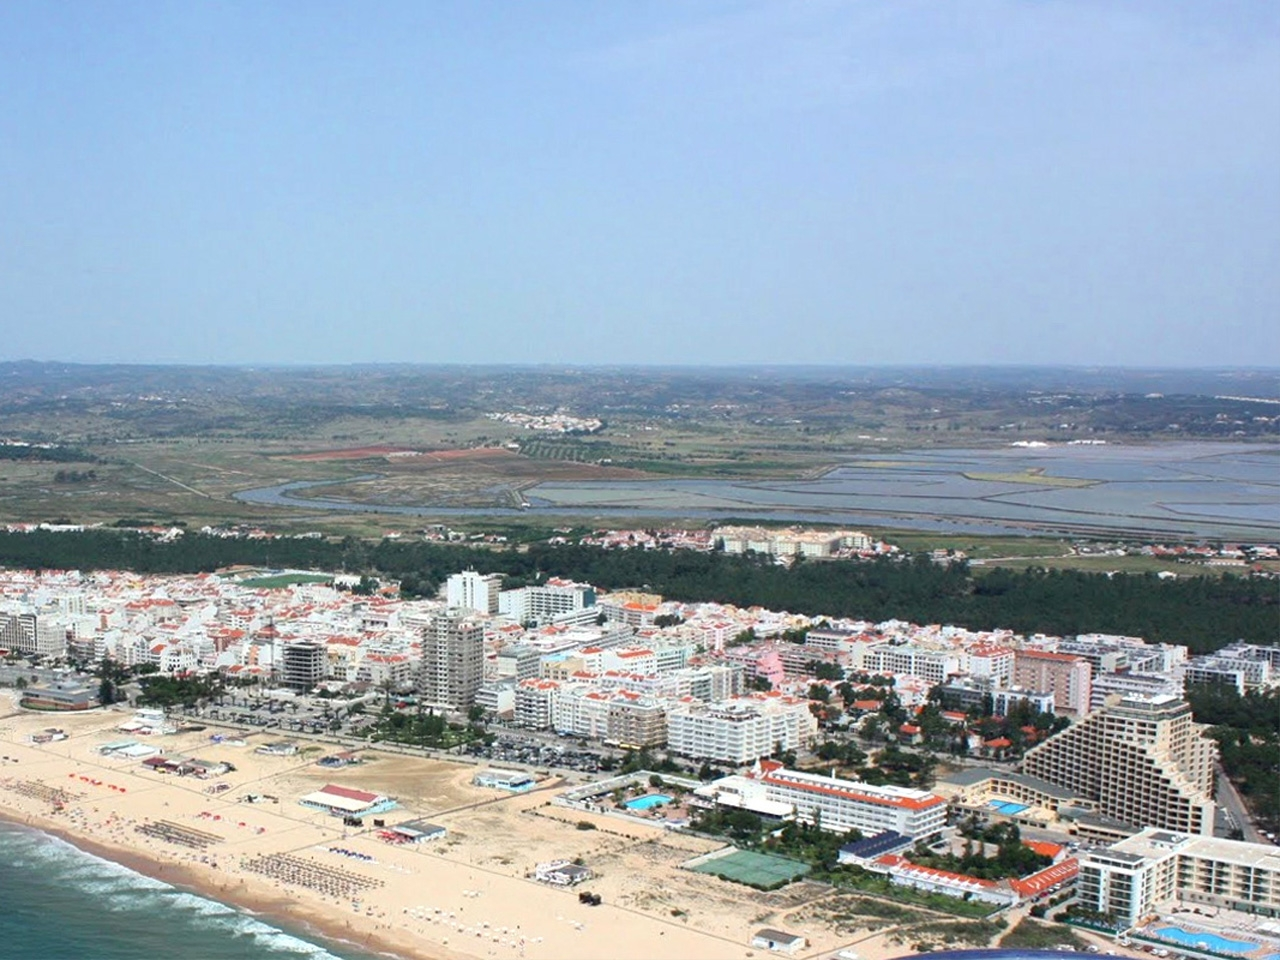 Eastern Algarve: Monte Gordo